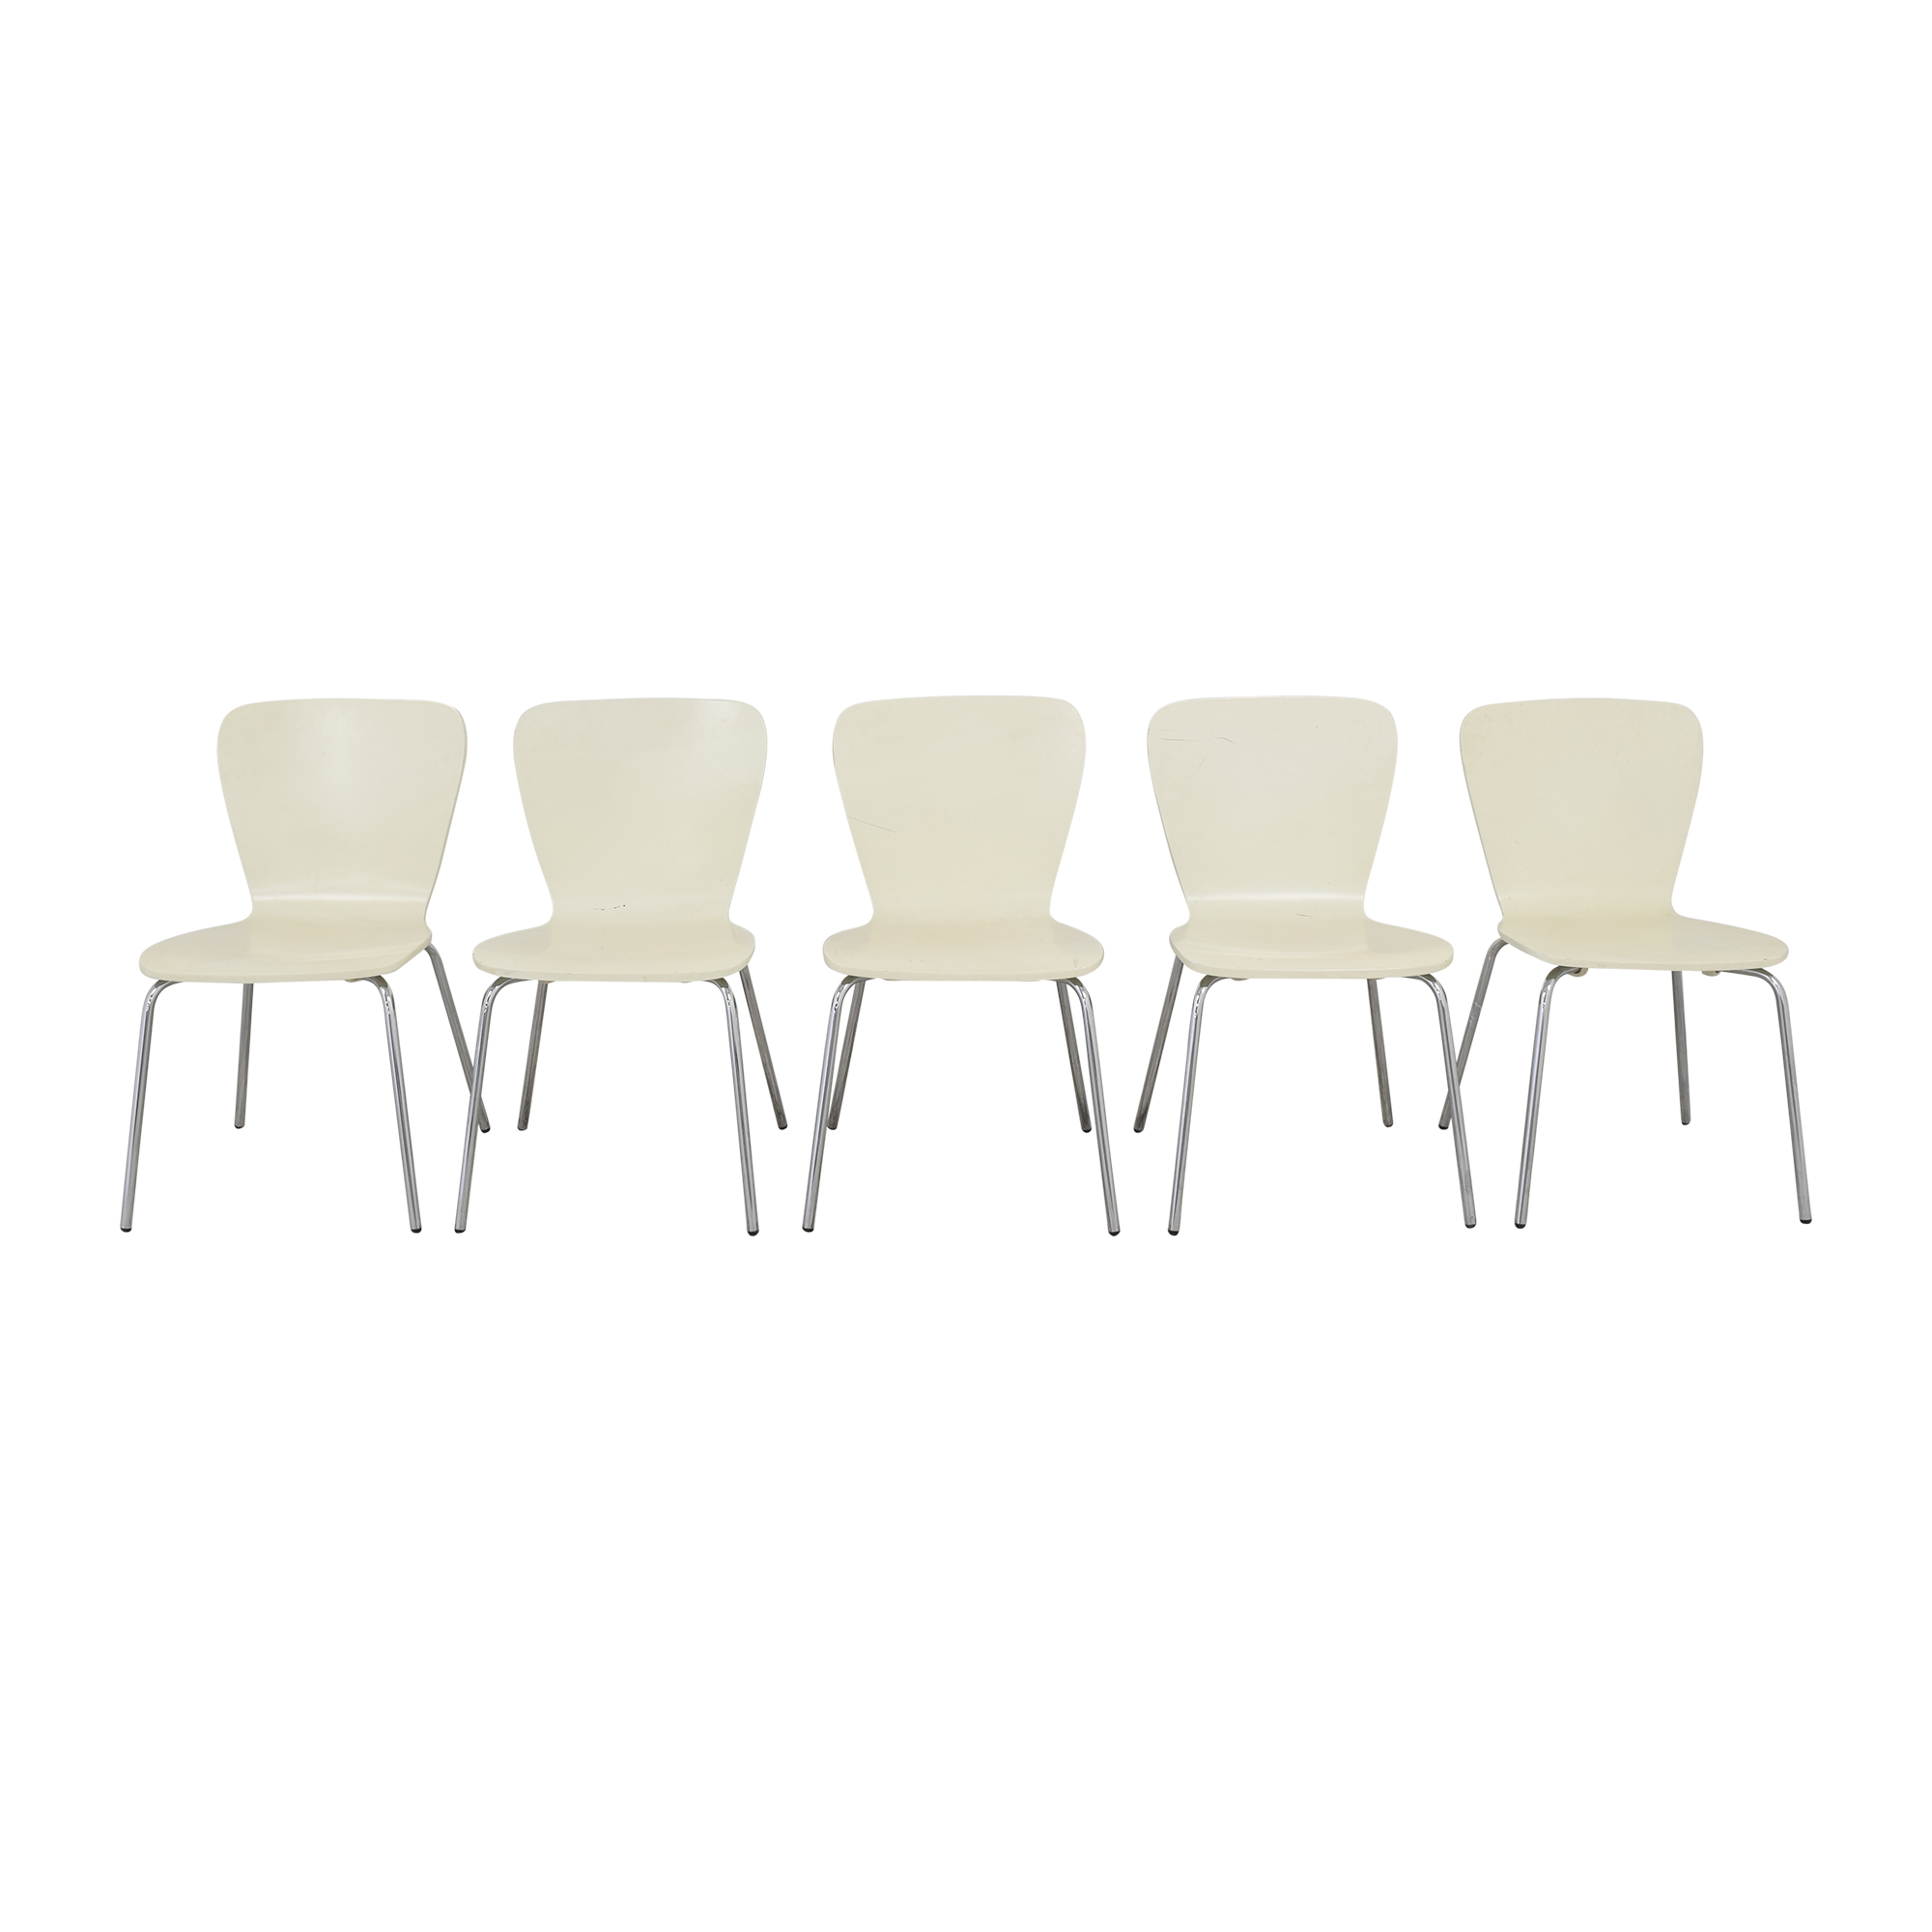 Crate & Barrel Crate & Barrel Felix Side Chairs price